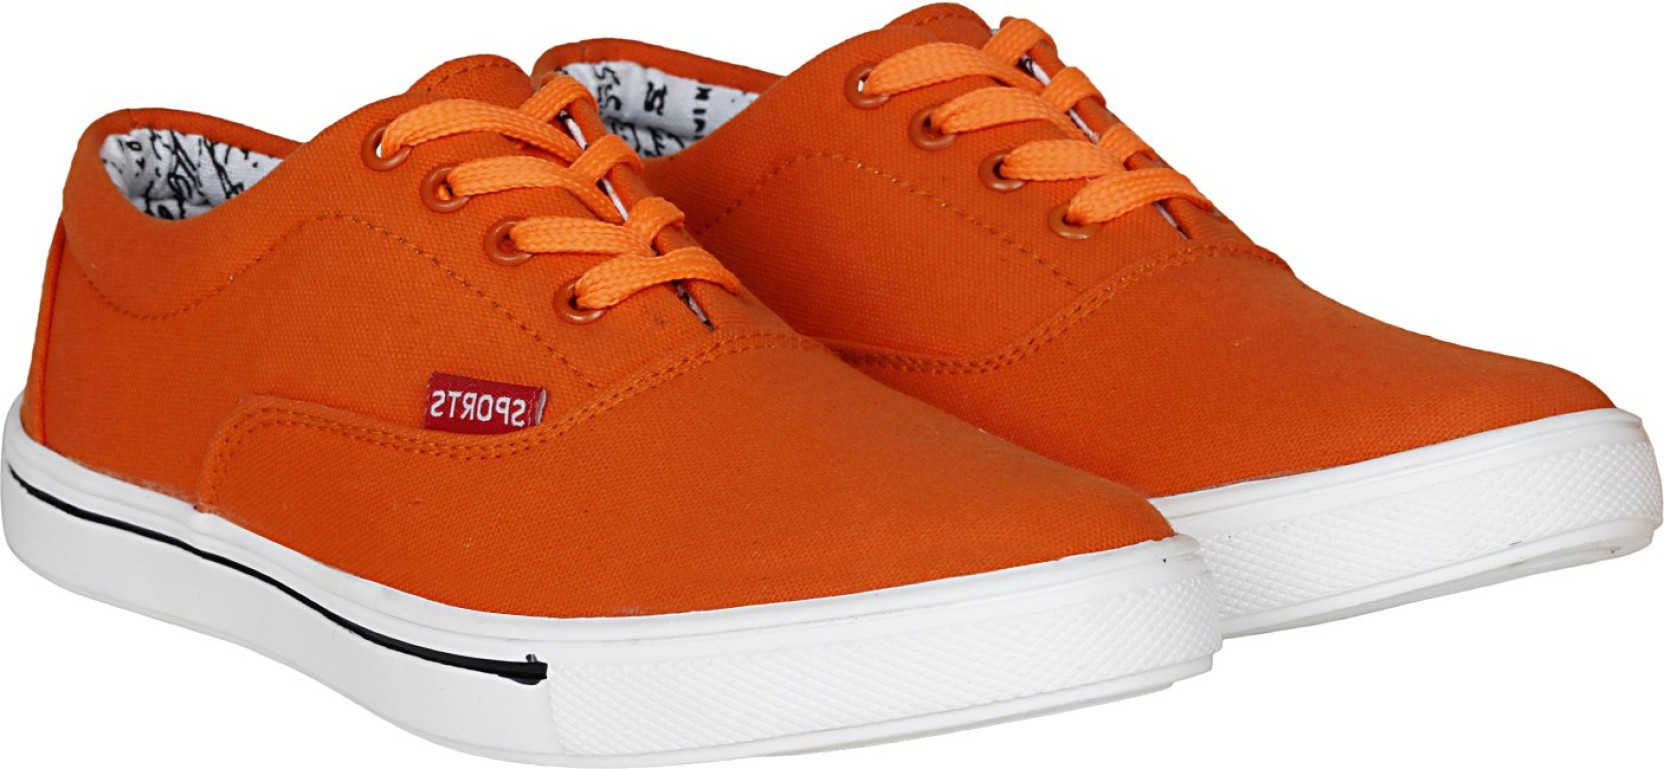 kraasa colored sneakers canvas shoes casuals wear